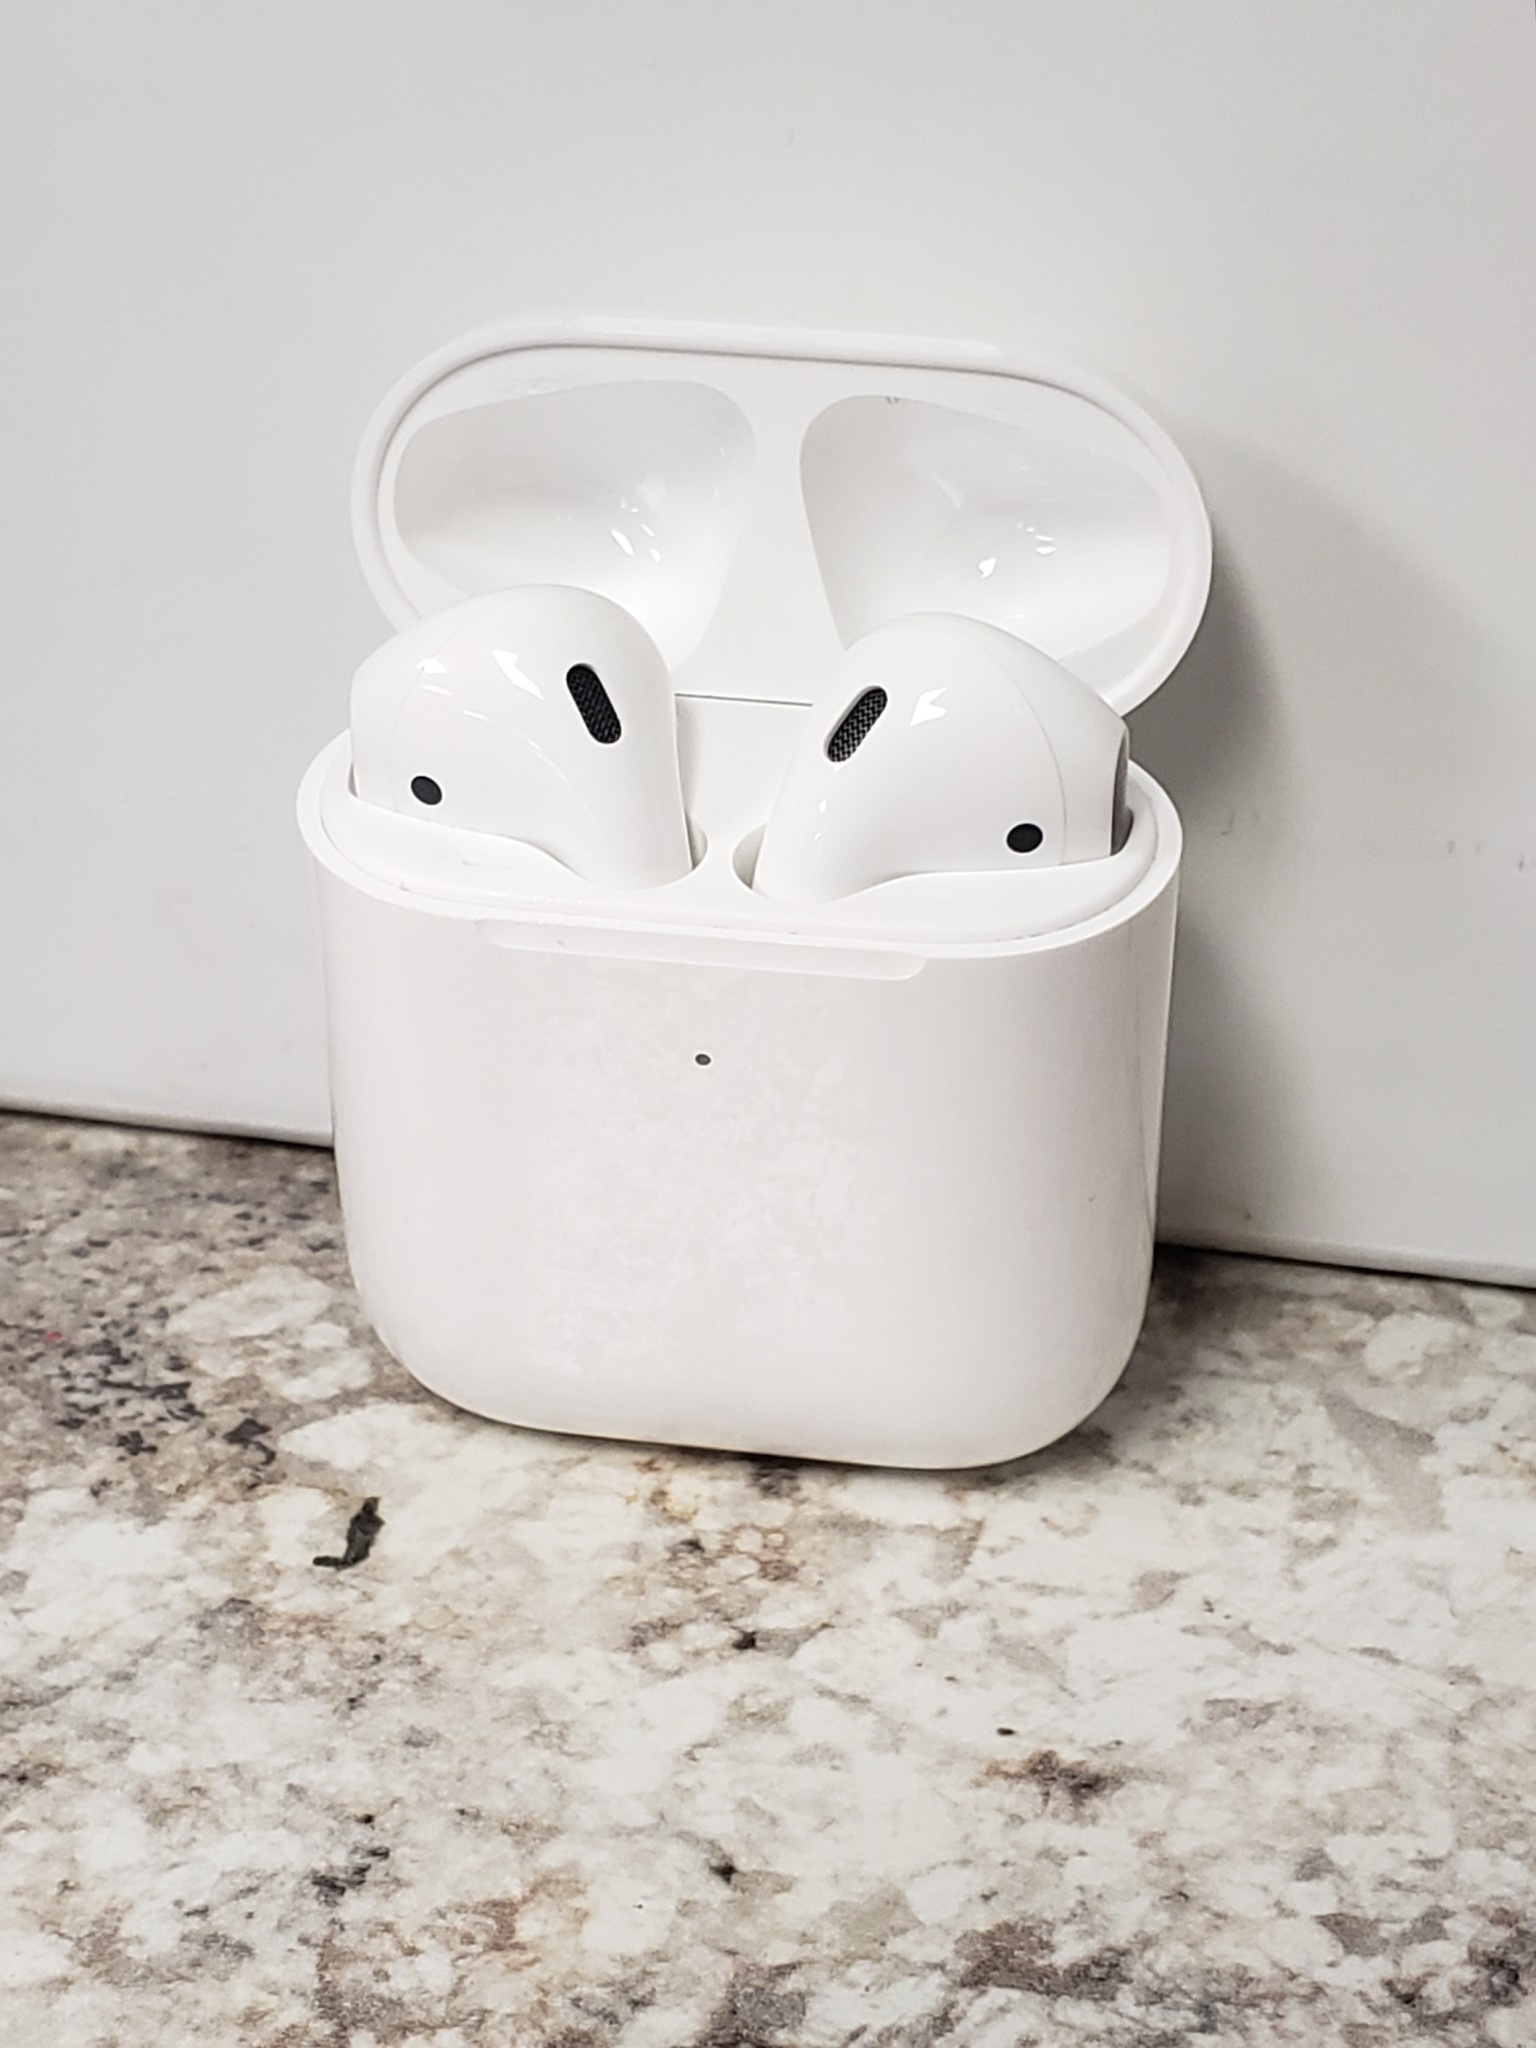 Apple Airpods 2 w/ Wireless Charging Case - Pre-Owned